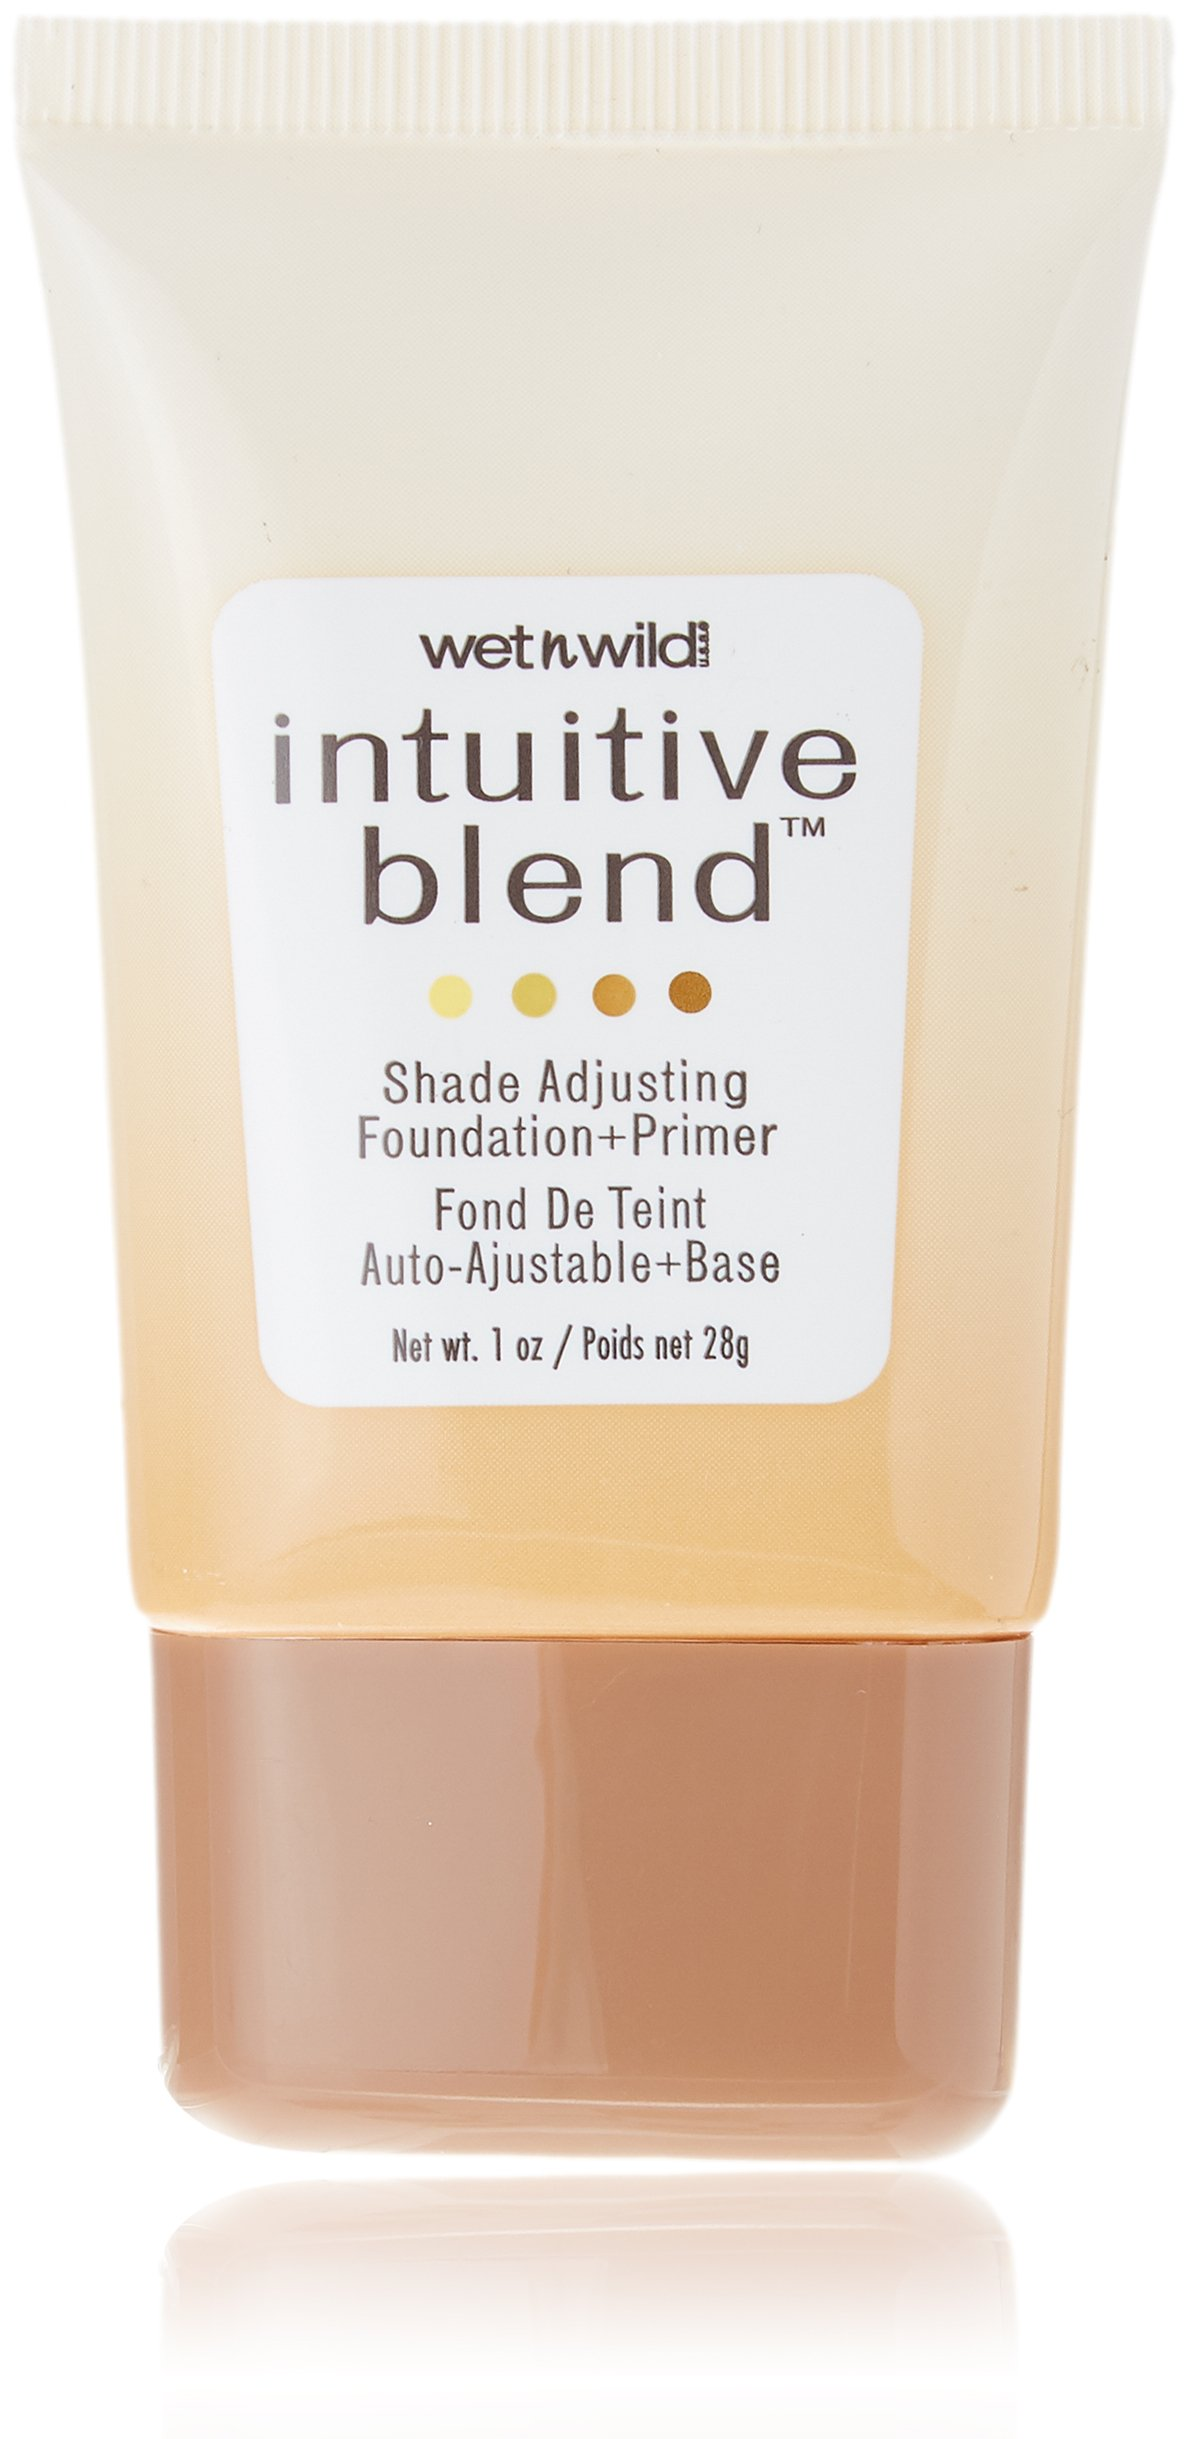 Wet n Wild Intuitive Blend Foundation + Primer, Shade Adjusting, Medium 177, 1